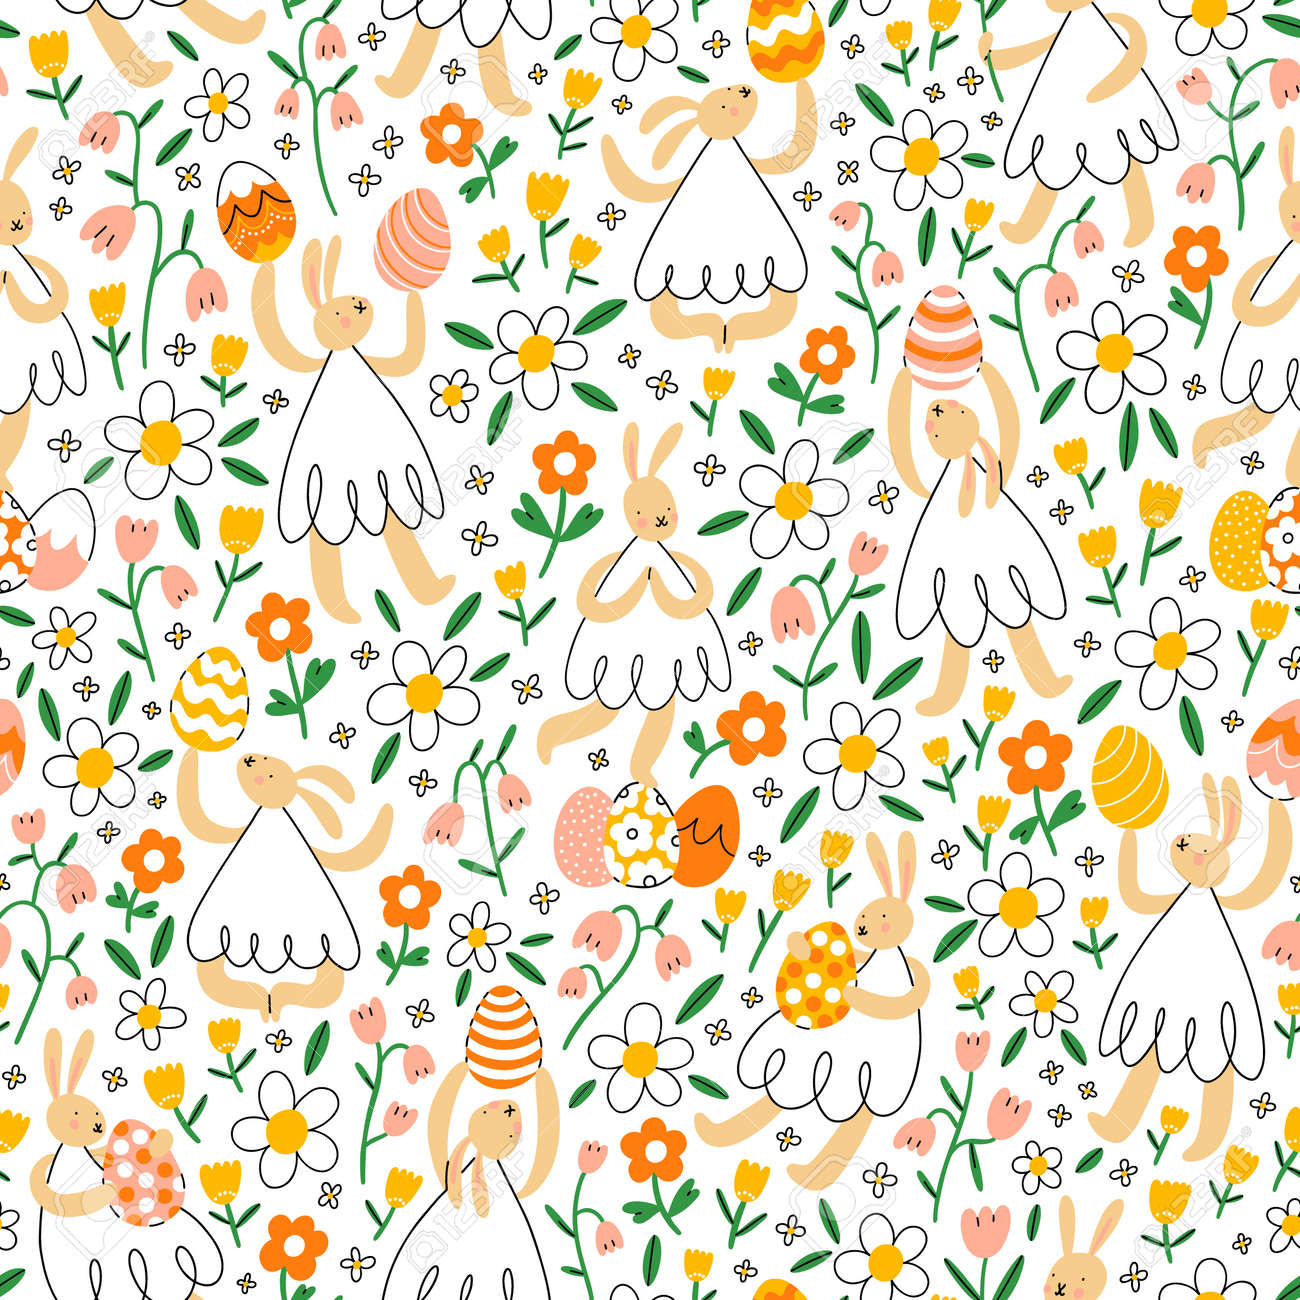 Easter bunnies with eggs in flower field in seamless pattern - 164484654